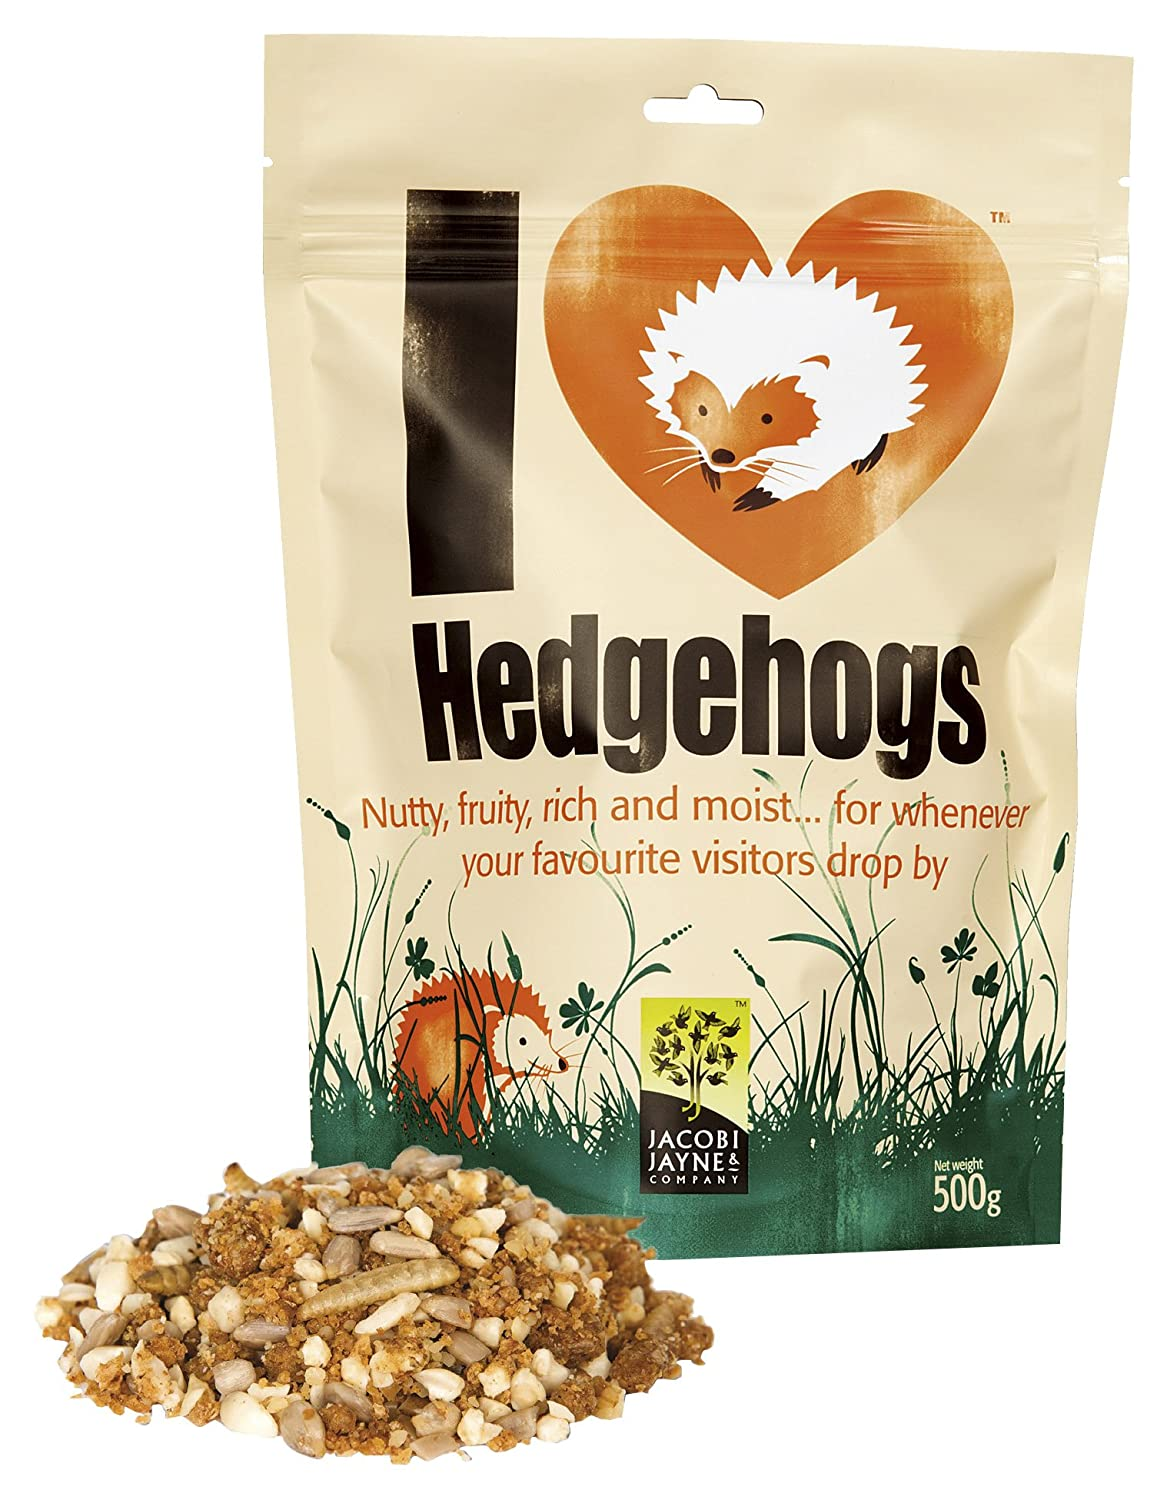 I Love Hedgehogs - Hedgehog Food- 2kg bag Jacobi Jayne